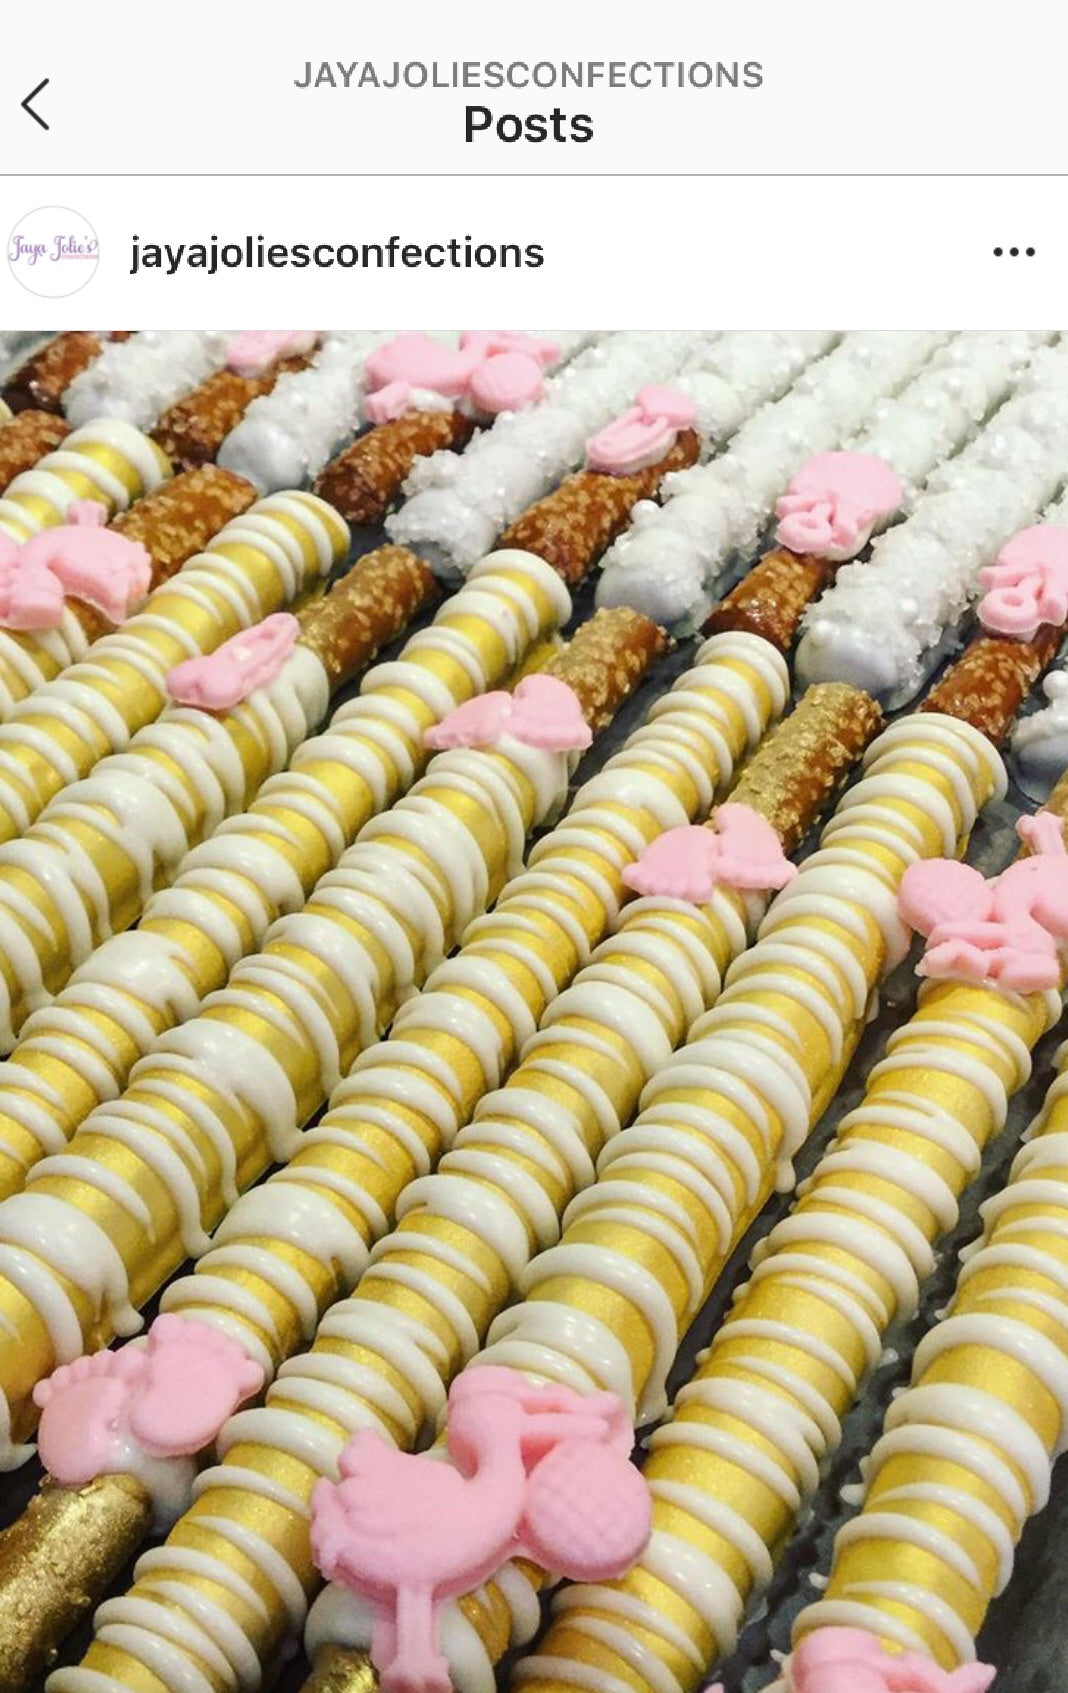 Confetti Chocolate Dipped Pretzel Rod - price per item